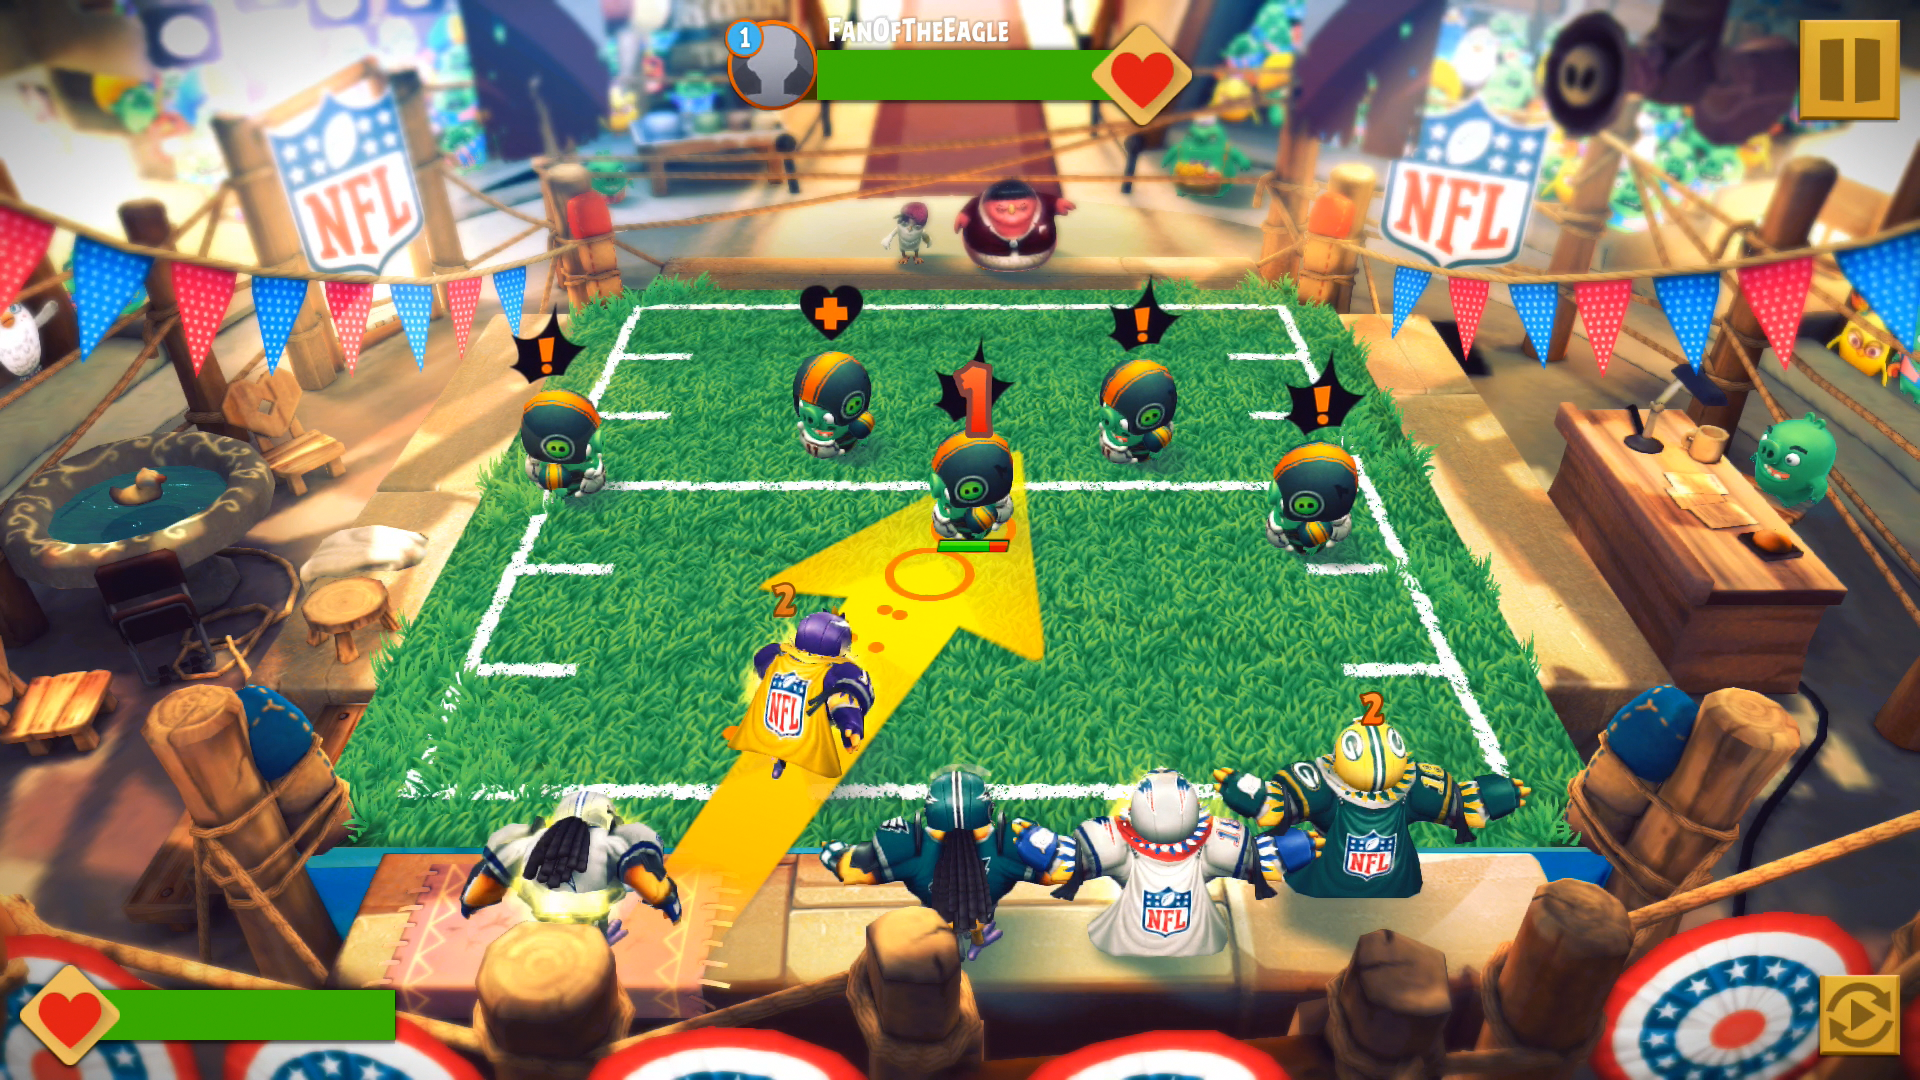 angry birds super bowl games screen shot